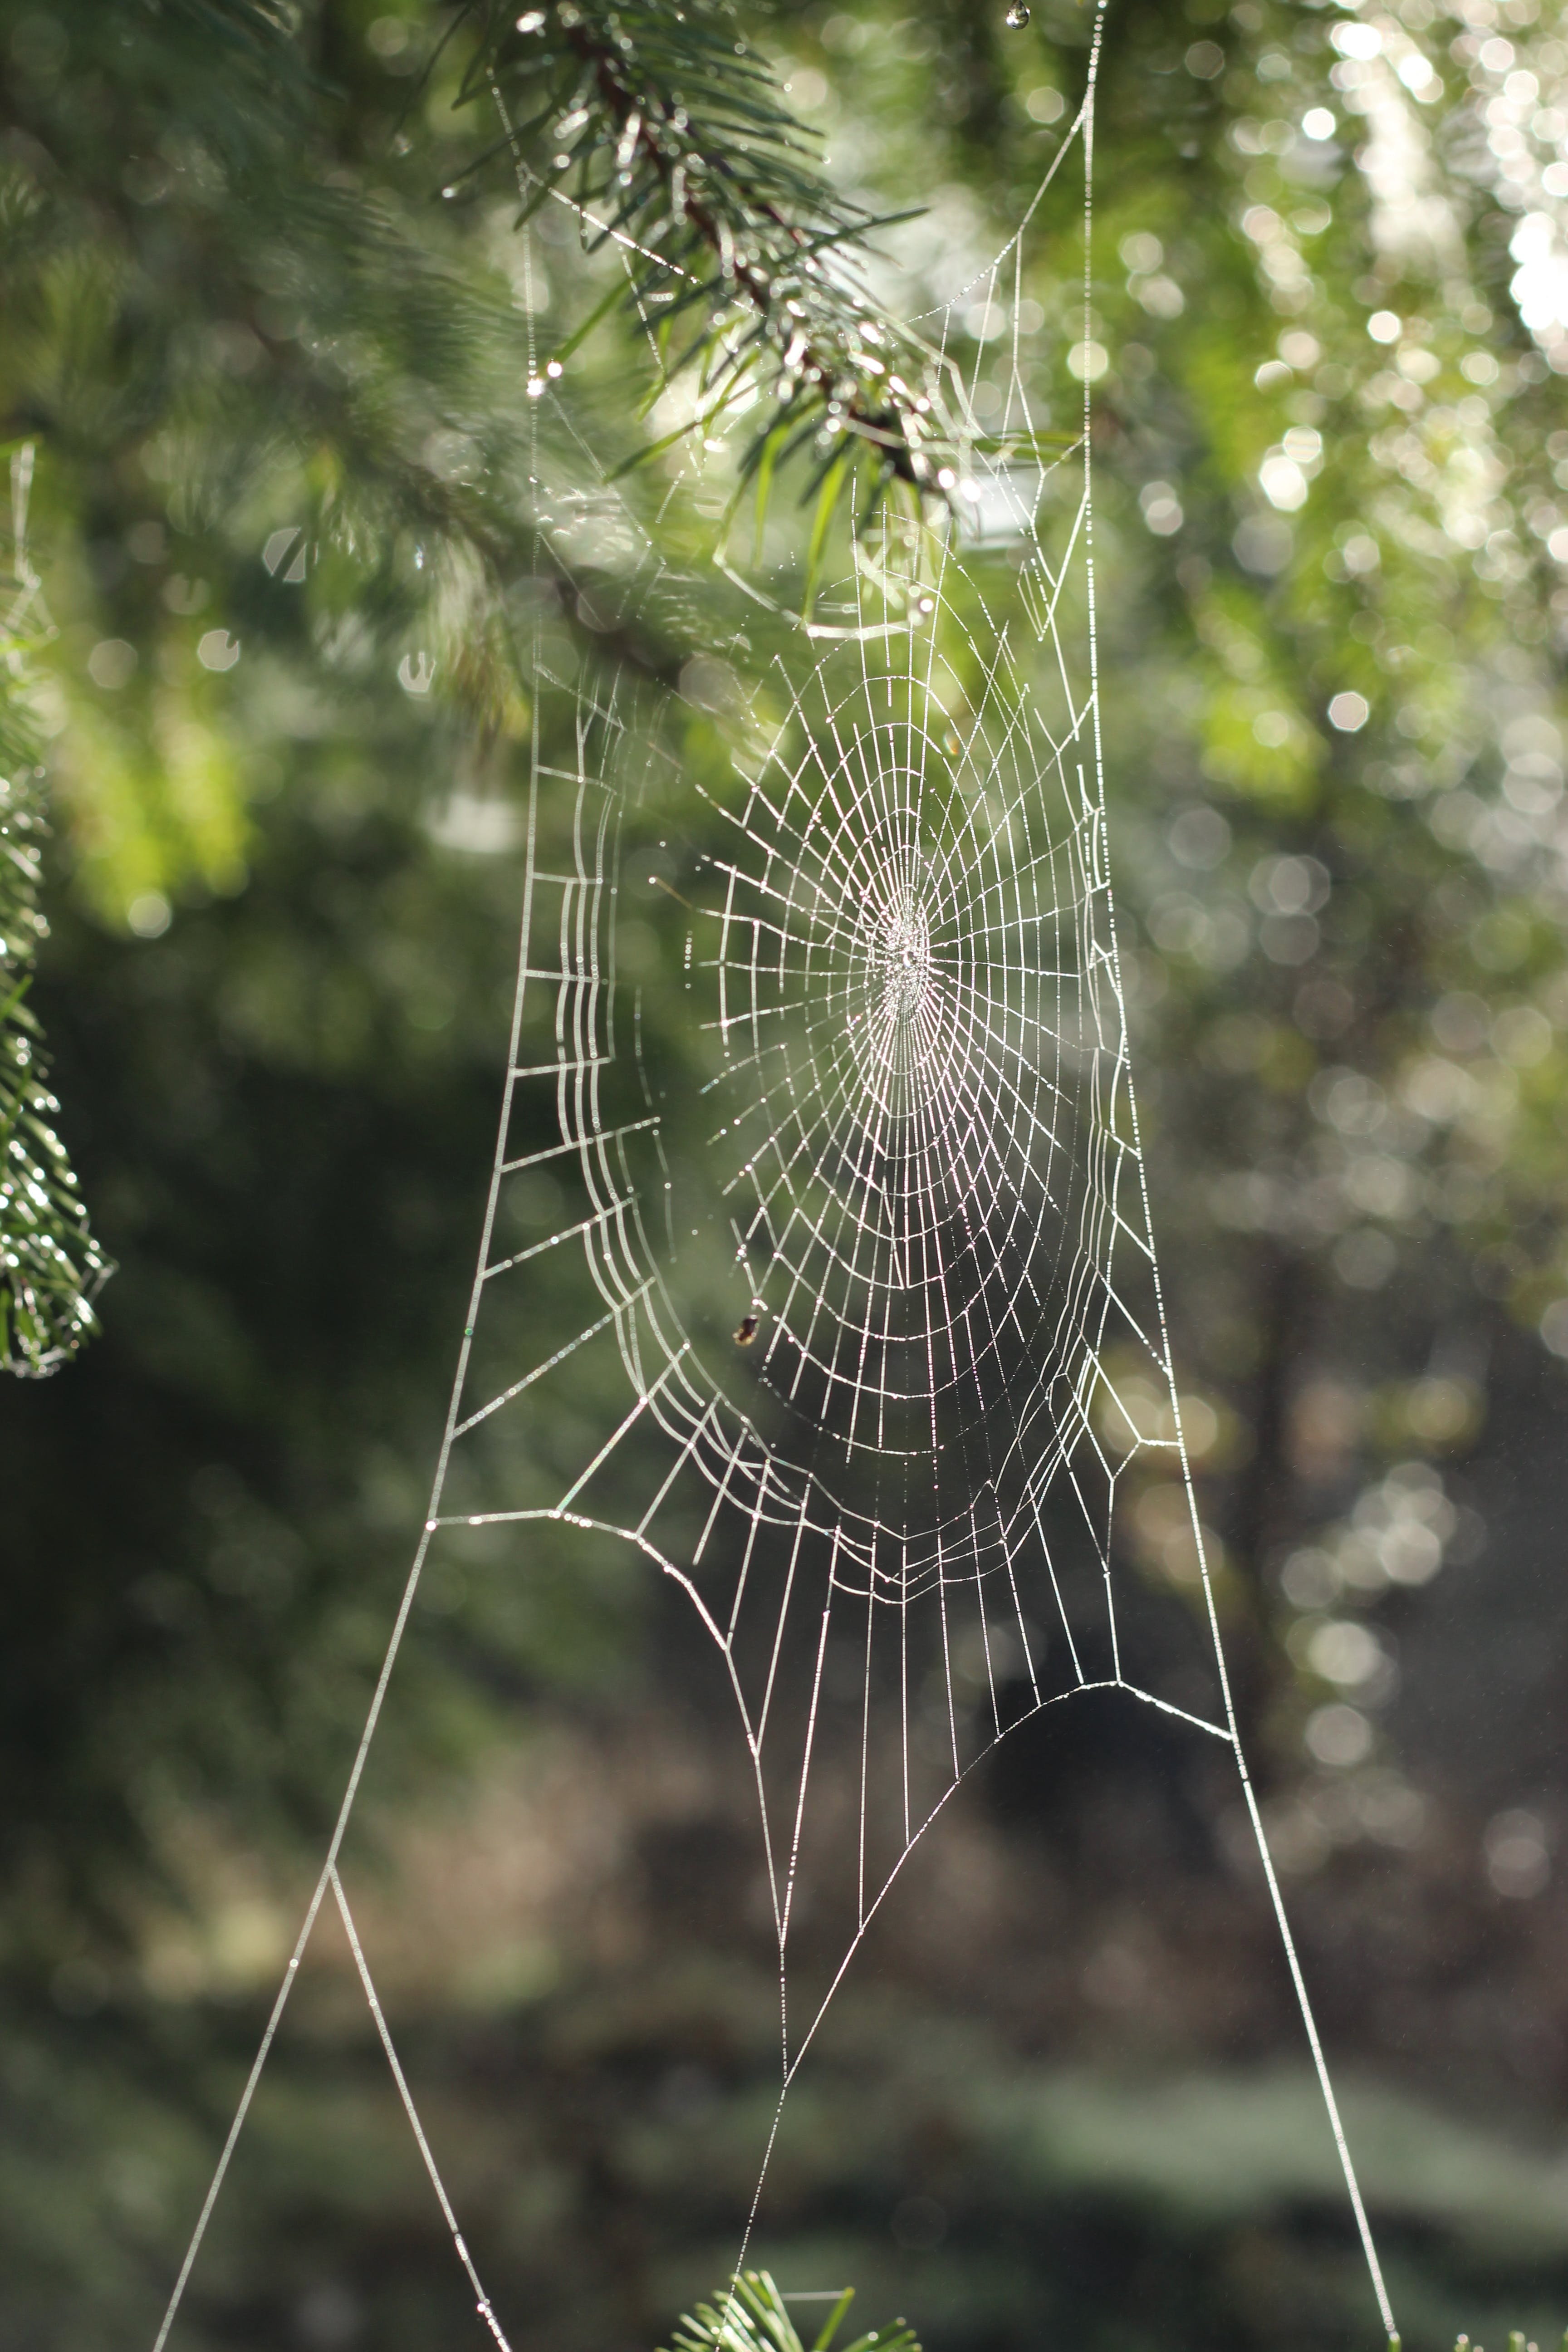 Spider's Web in Closeup Photography